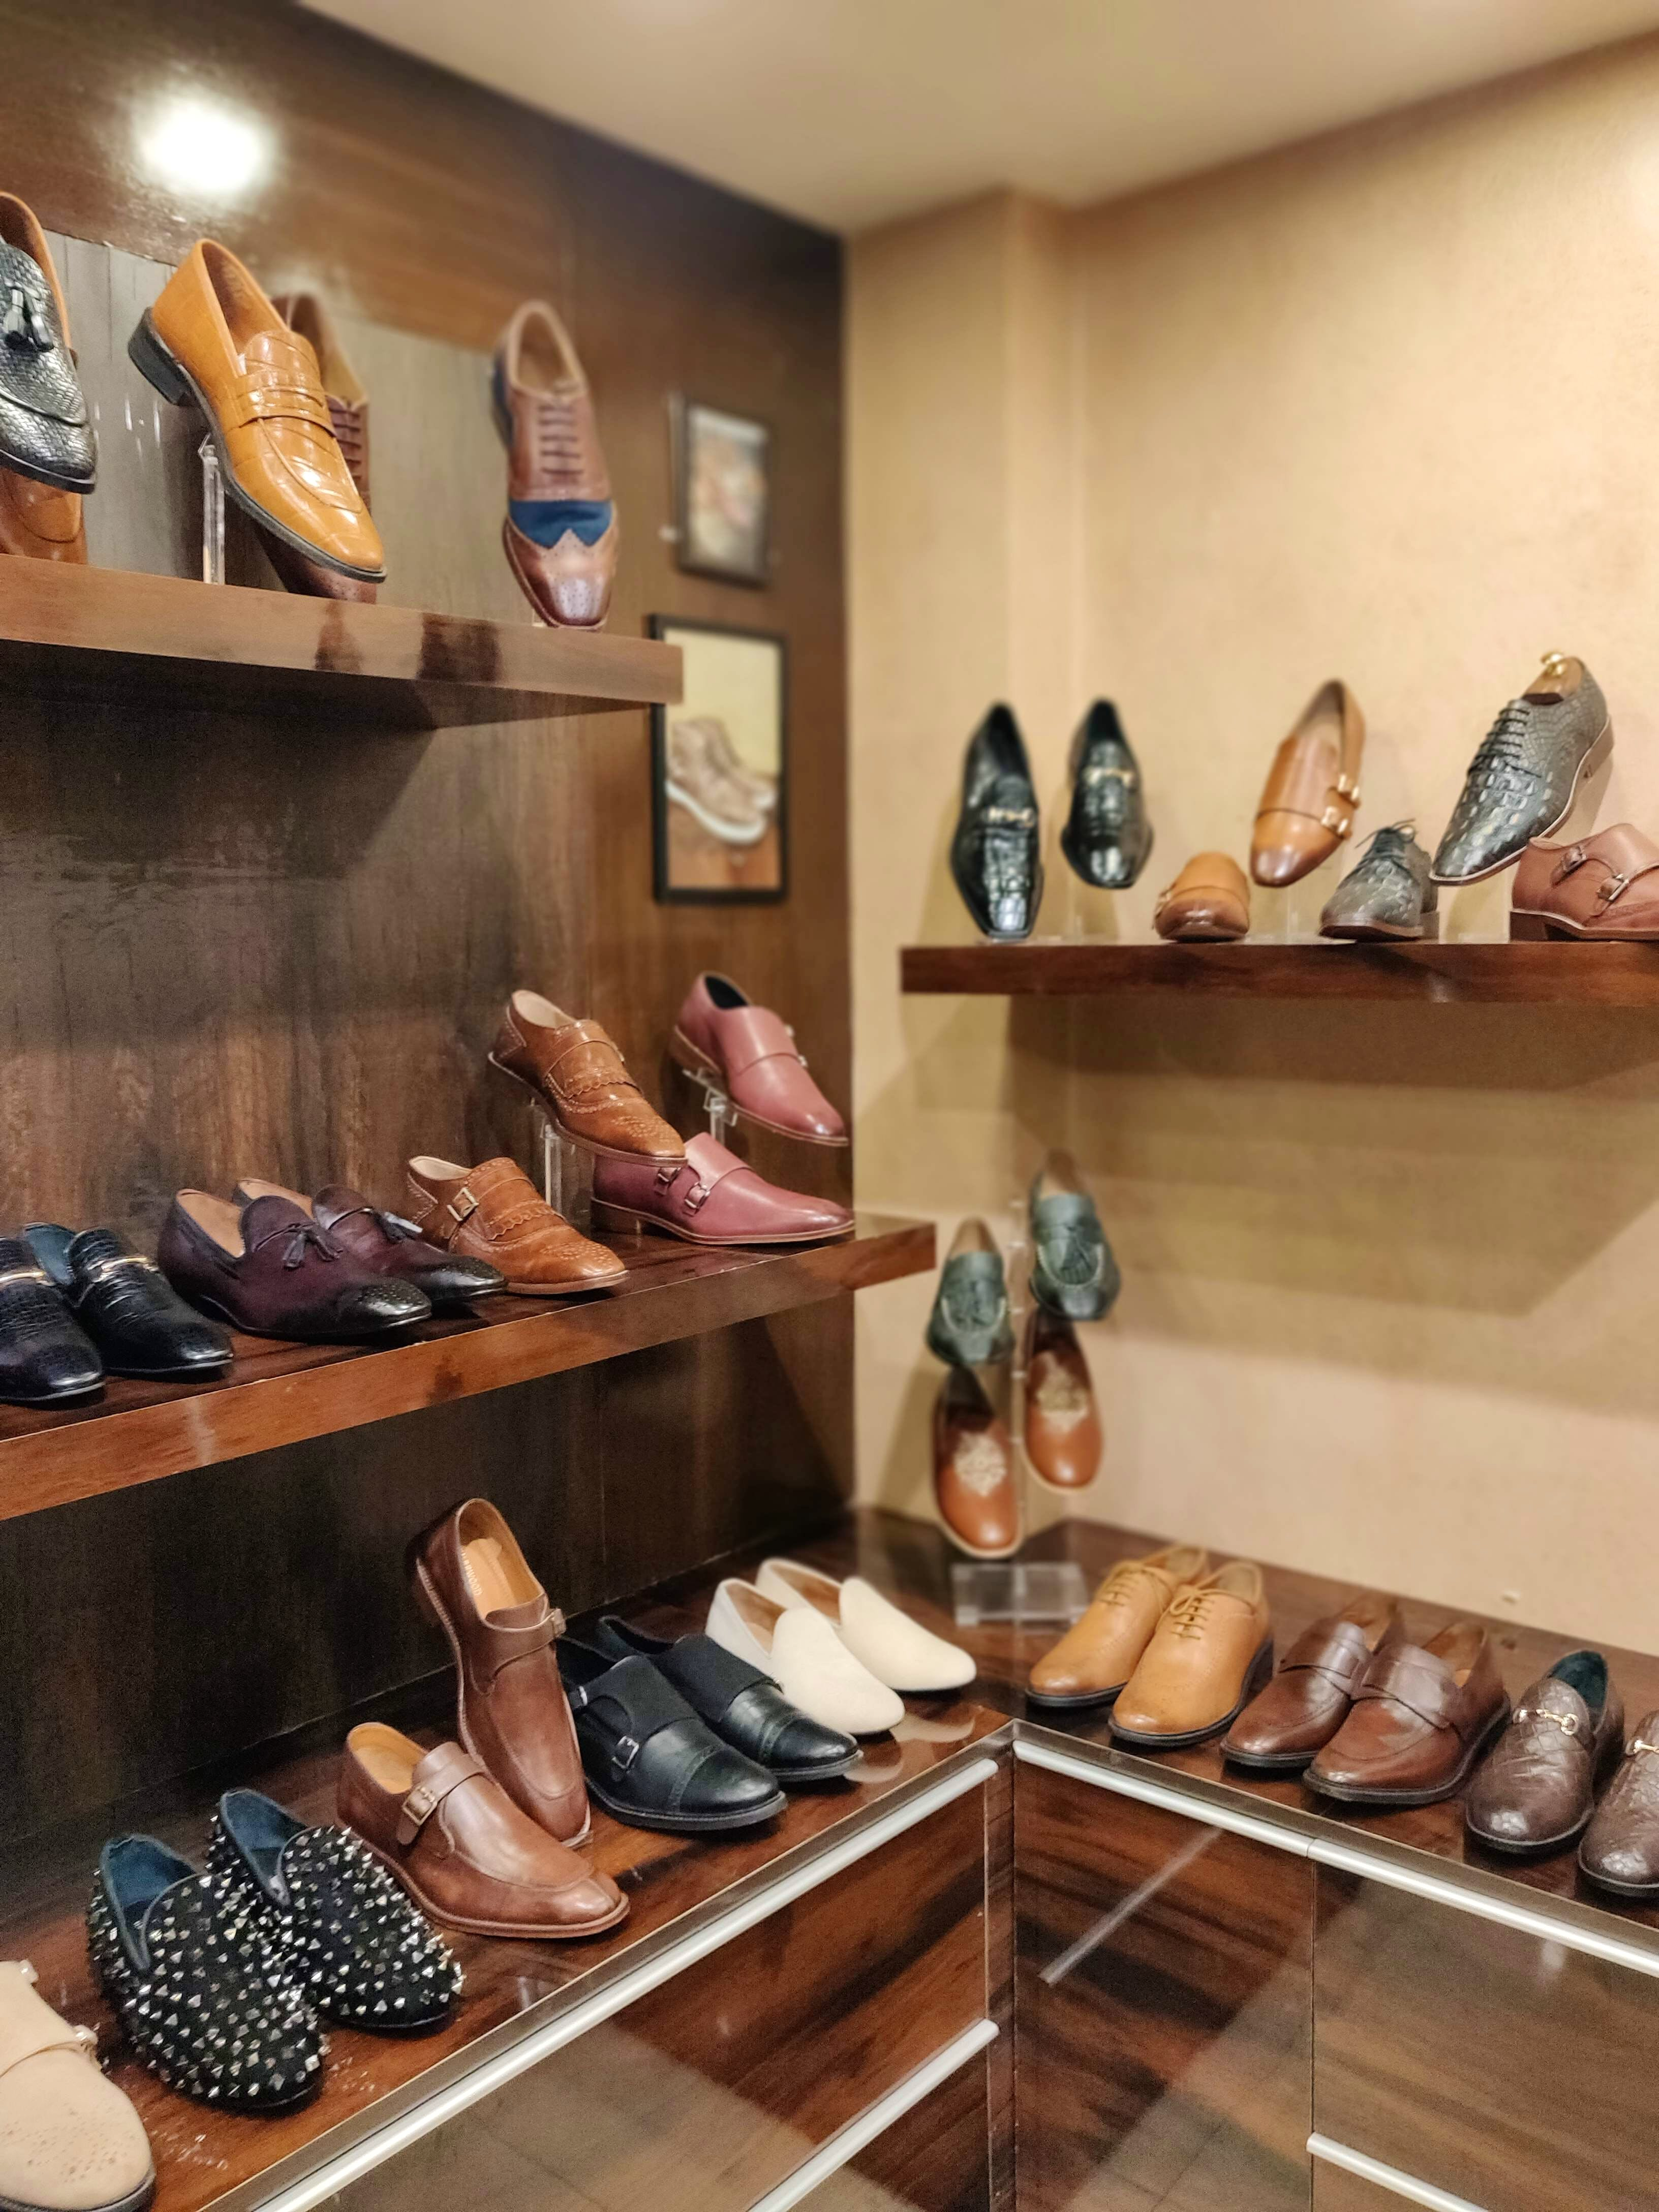 Shoe store,Shelf,Footwear,Room,Shoe,Collection,Display case,Interior design,Shelving,Building